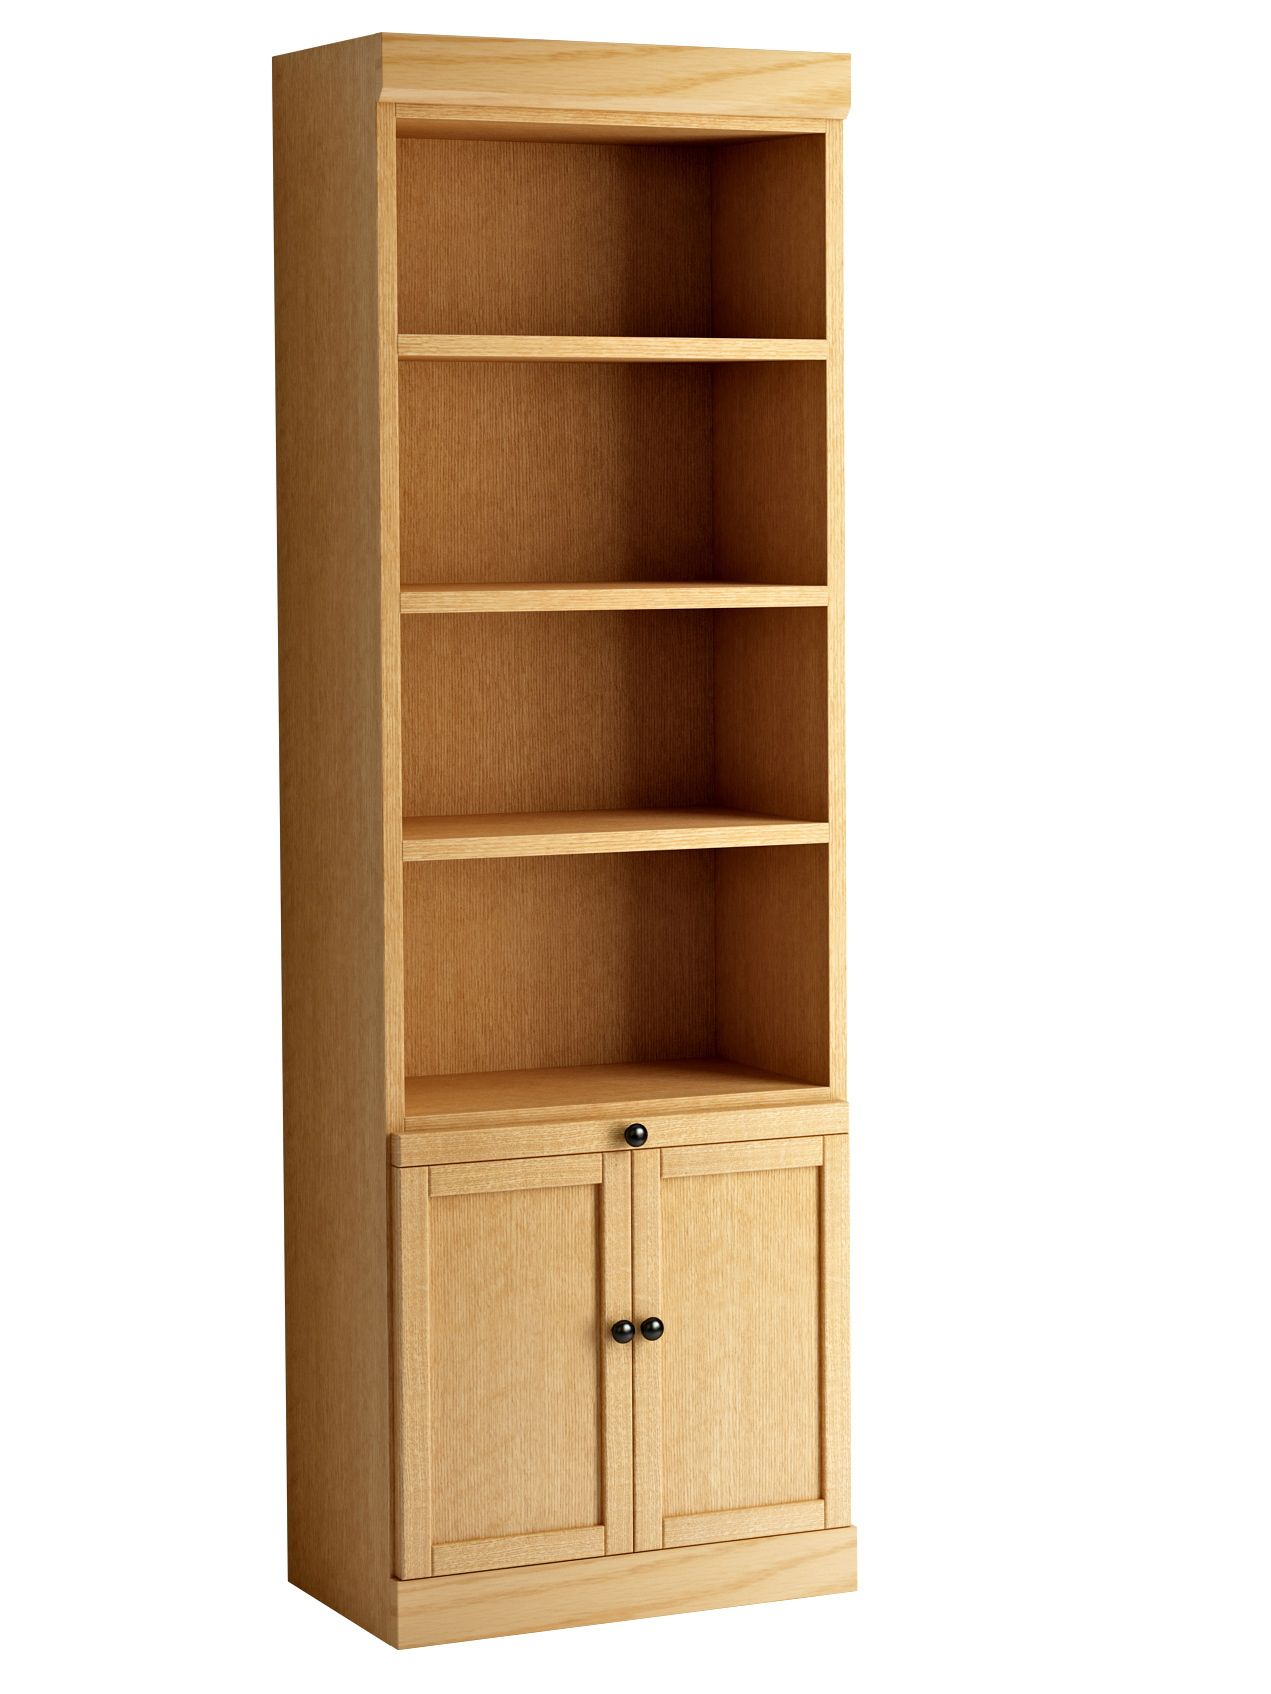 Mission style bookcase with bottom doors in oak honey finish